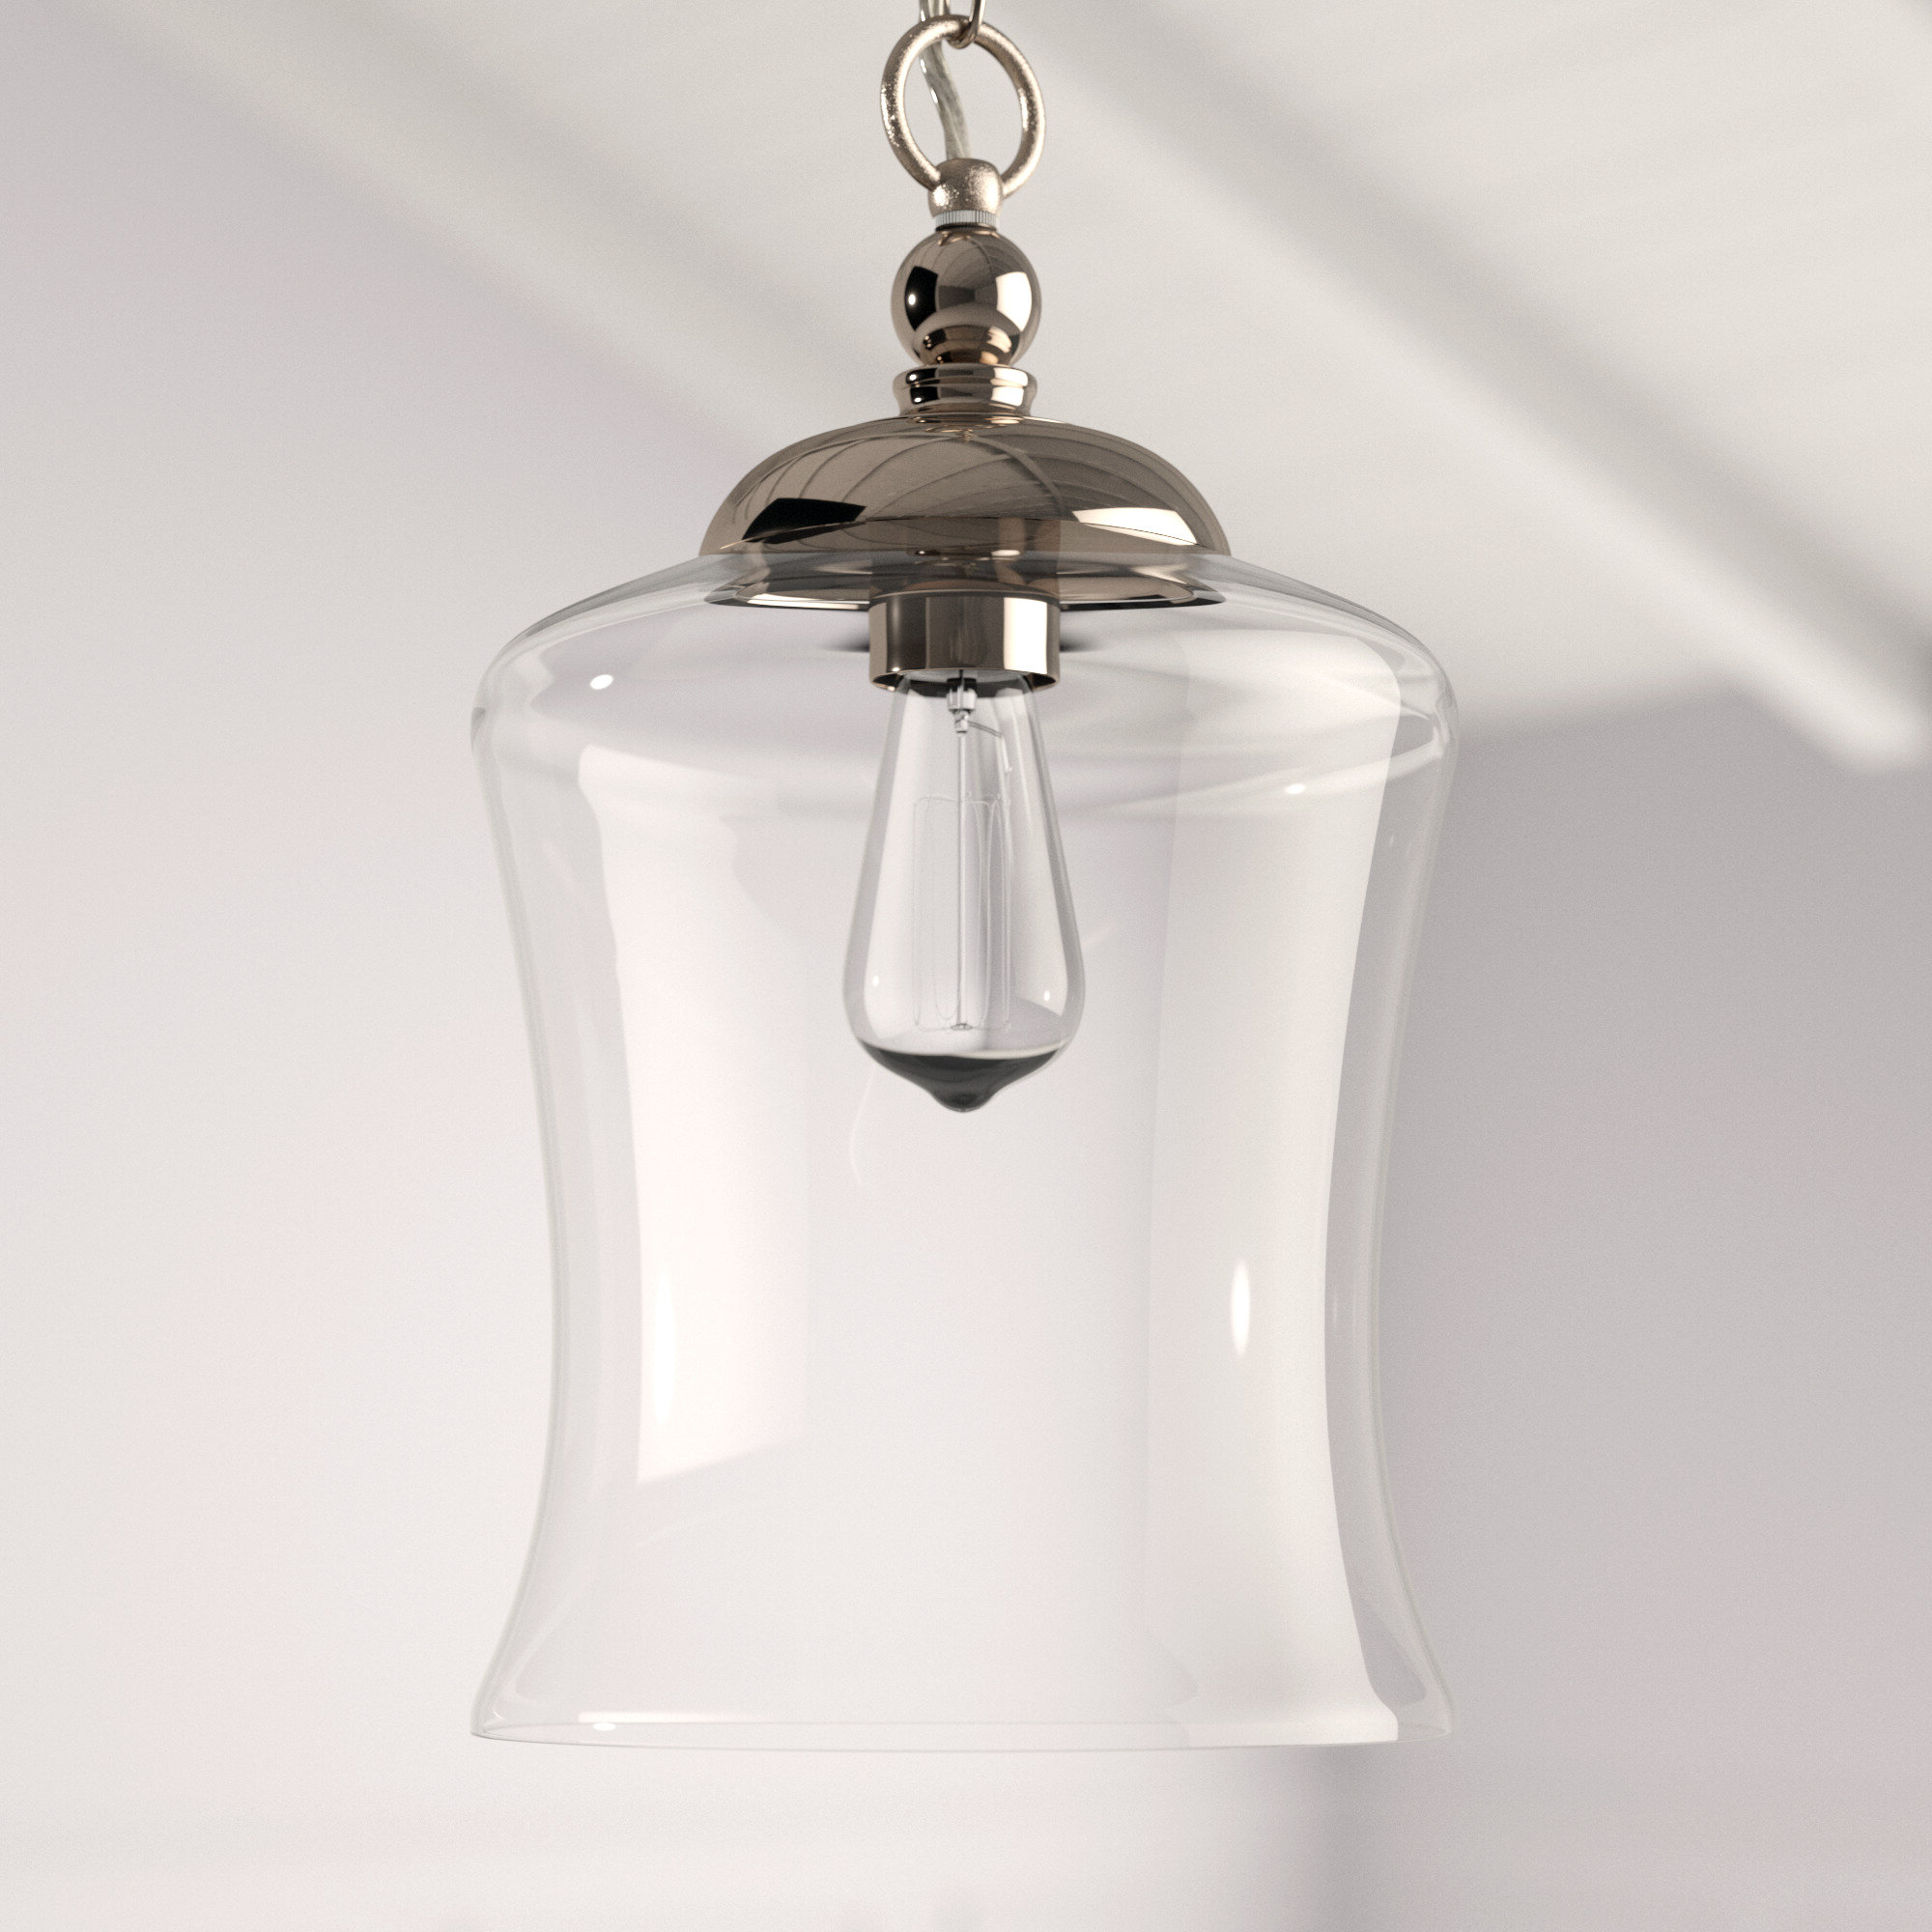 Wentzville 1 Light Single Bell Pendant Pertaining To Fashionable Sussex 1 Light Single Geometric Pendants (View 21 of 25)